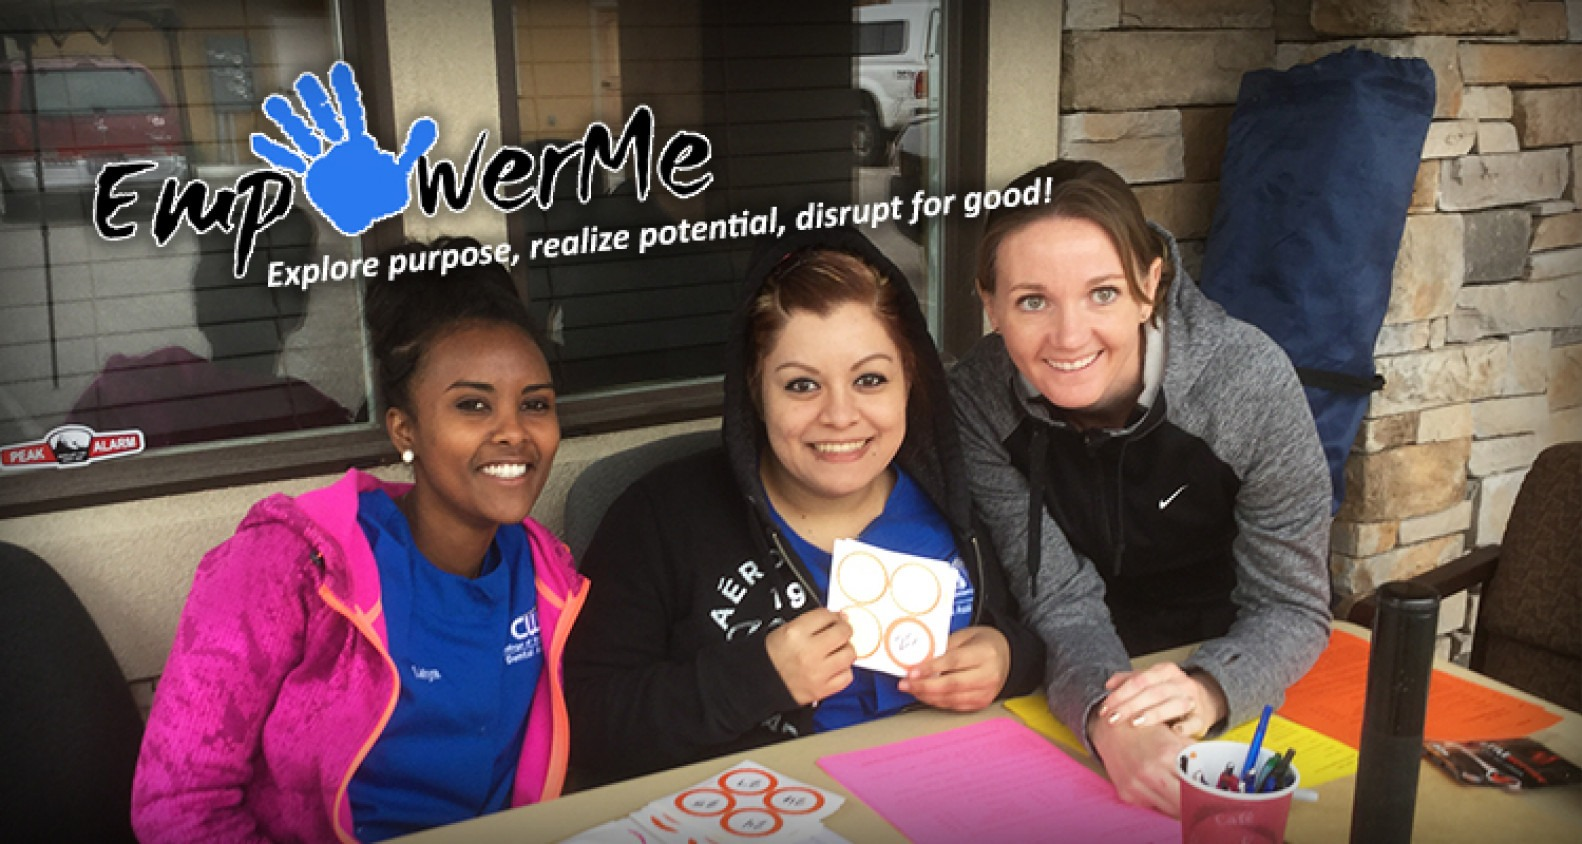 Group of smiling students | EmpowerMe: Explore purpose, realize potential, disrupt for good!